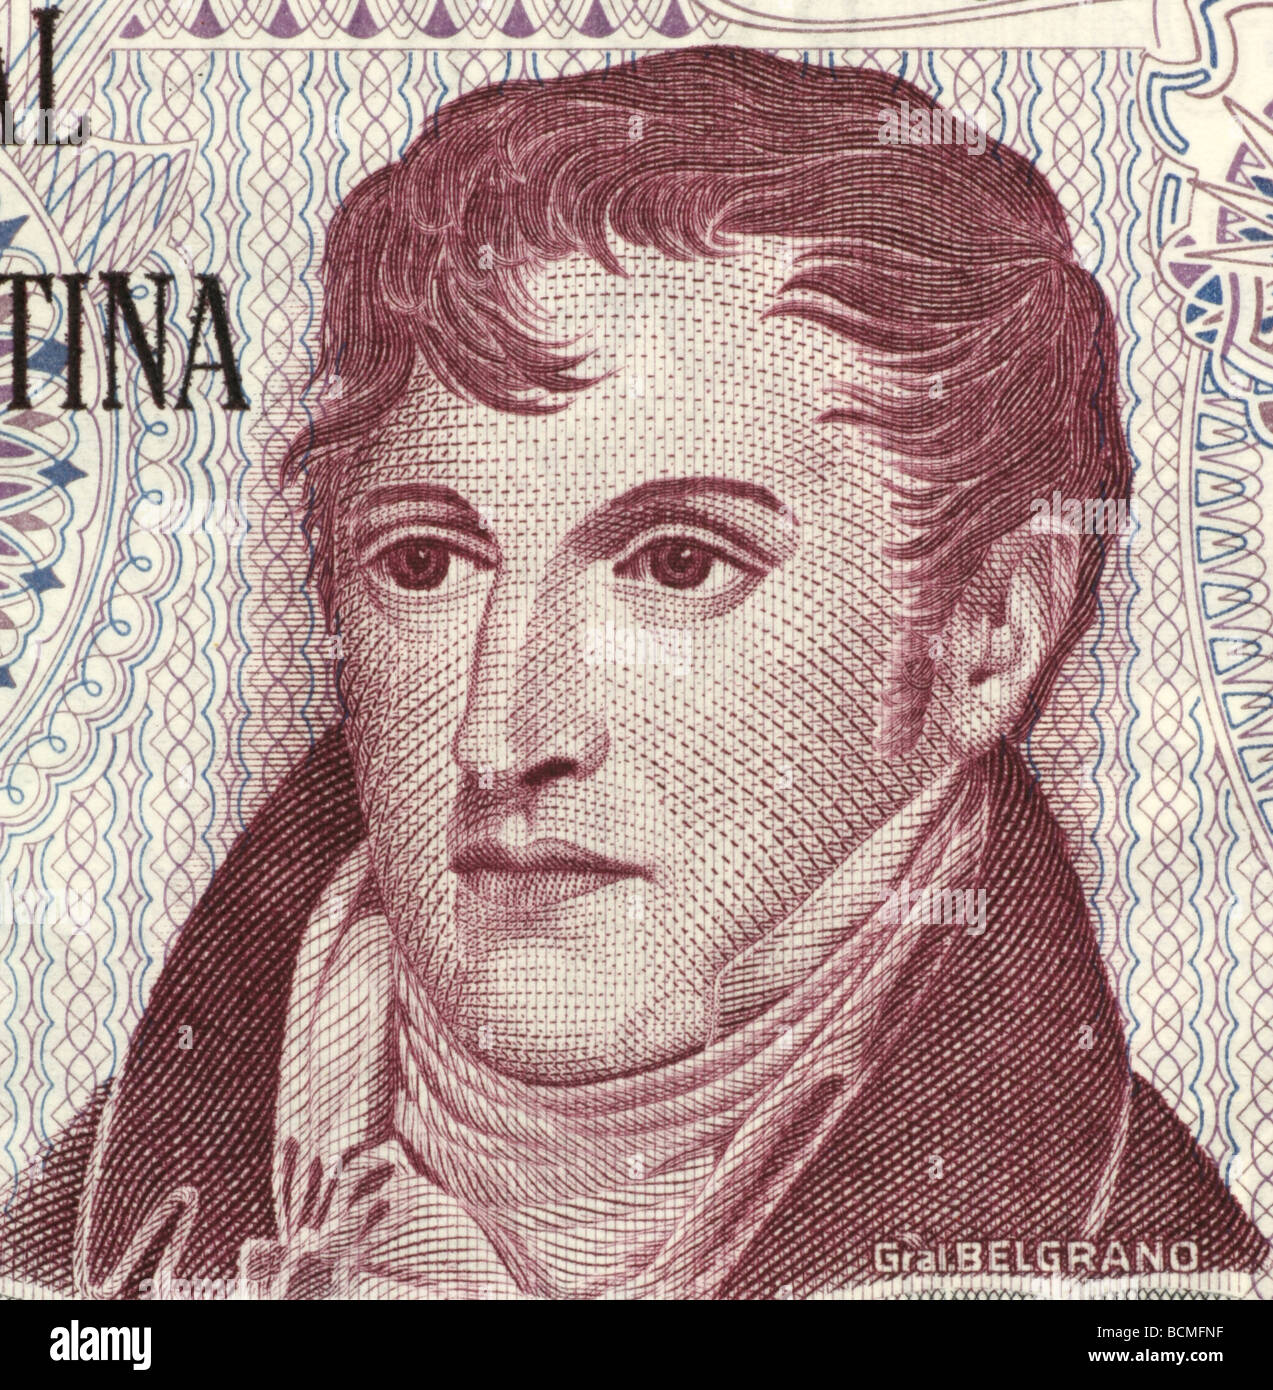 Manuel Belgrano on 10 Pesos 1976 Banknote from Argentina - Stock Image